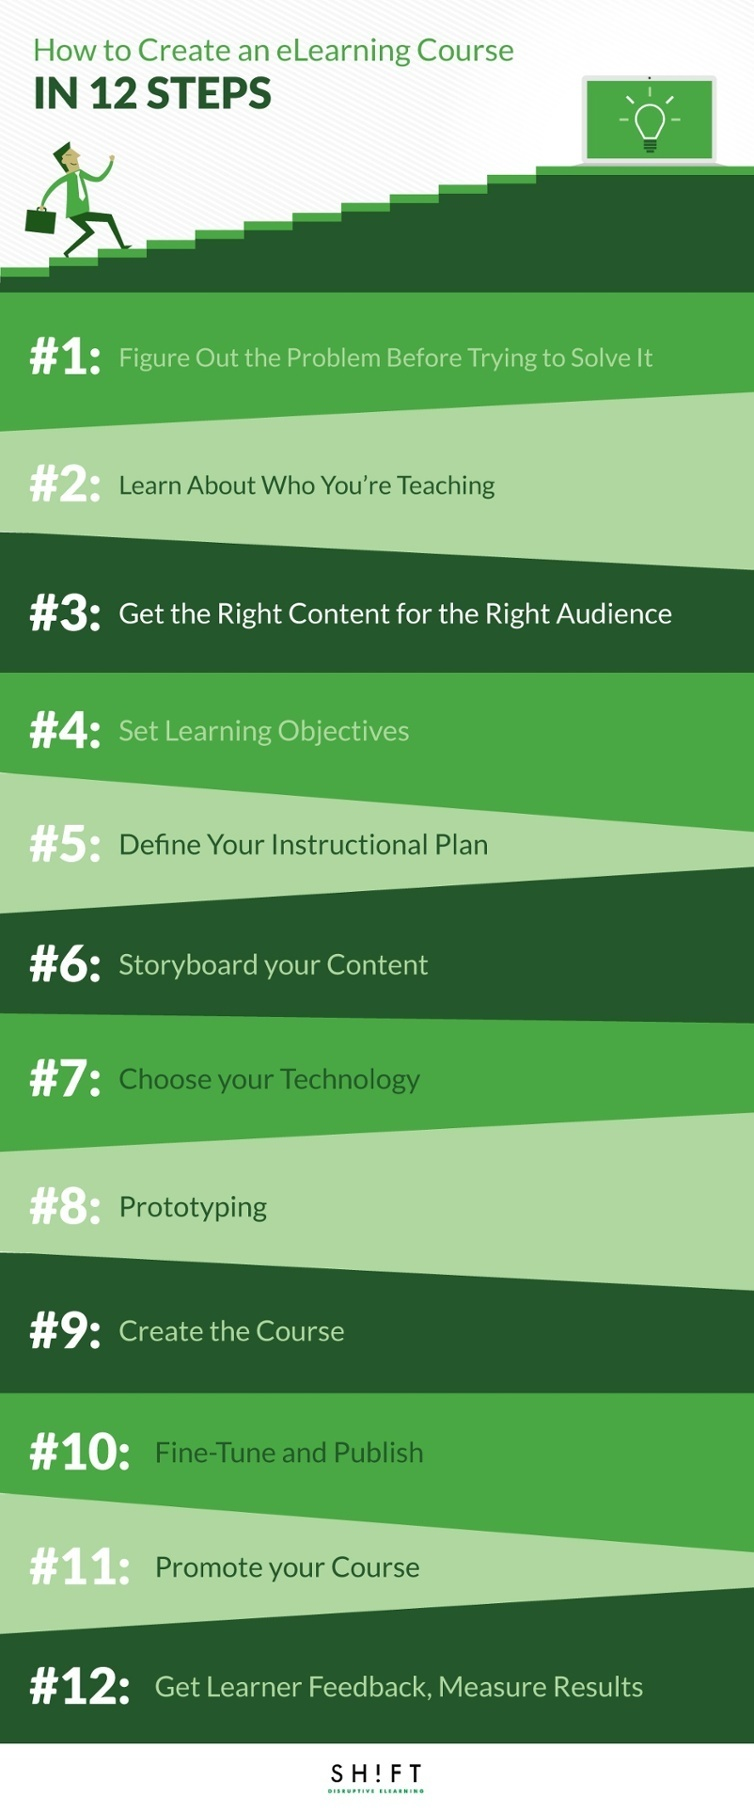 Create an eLearning Course in 12 Steps Infographic